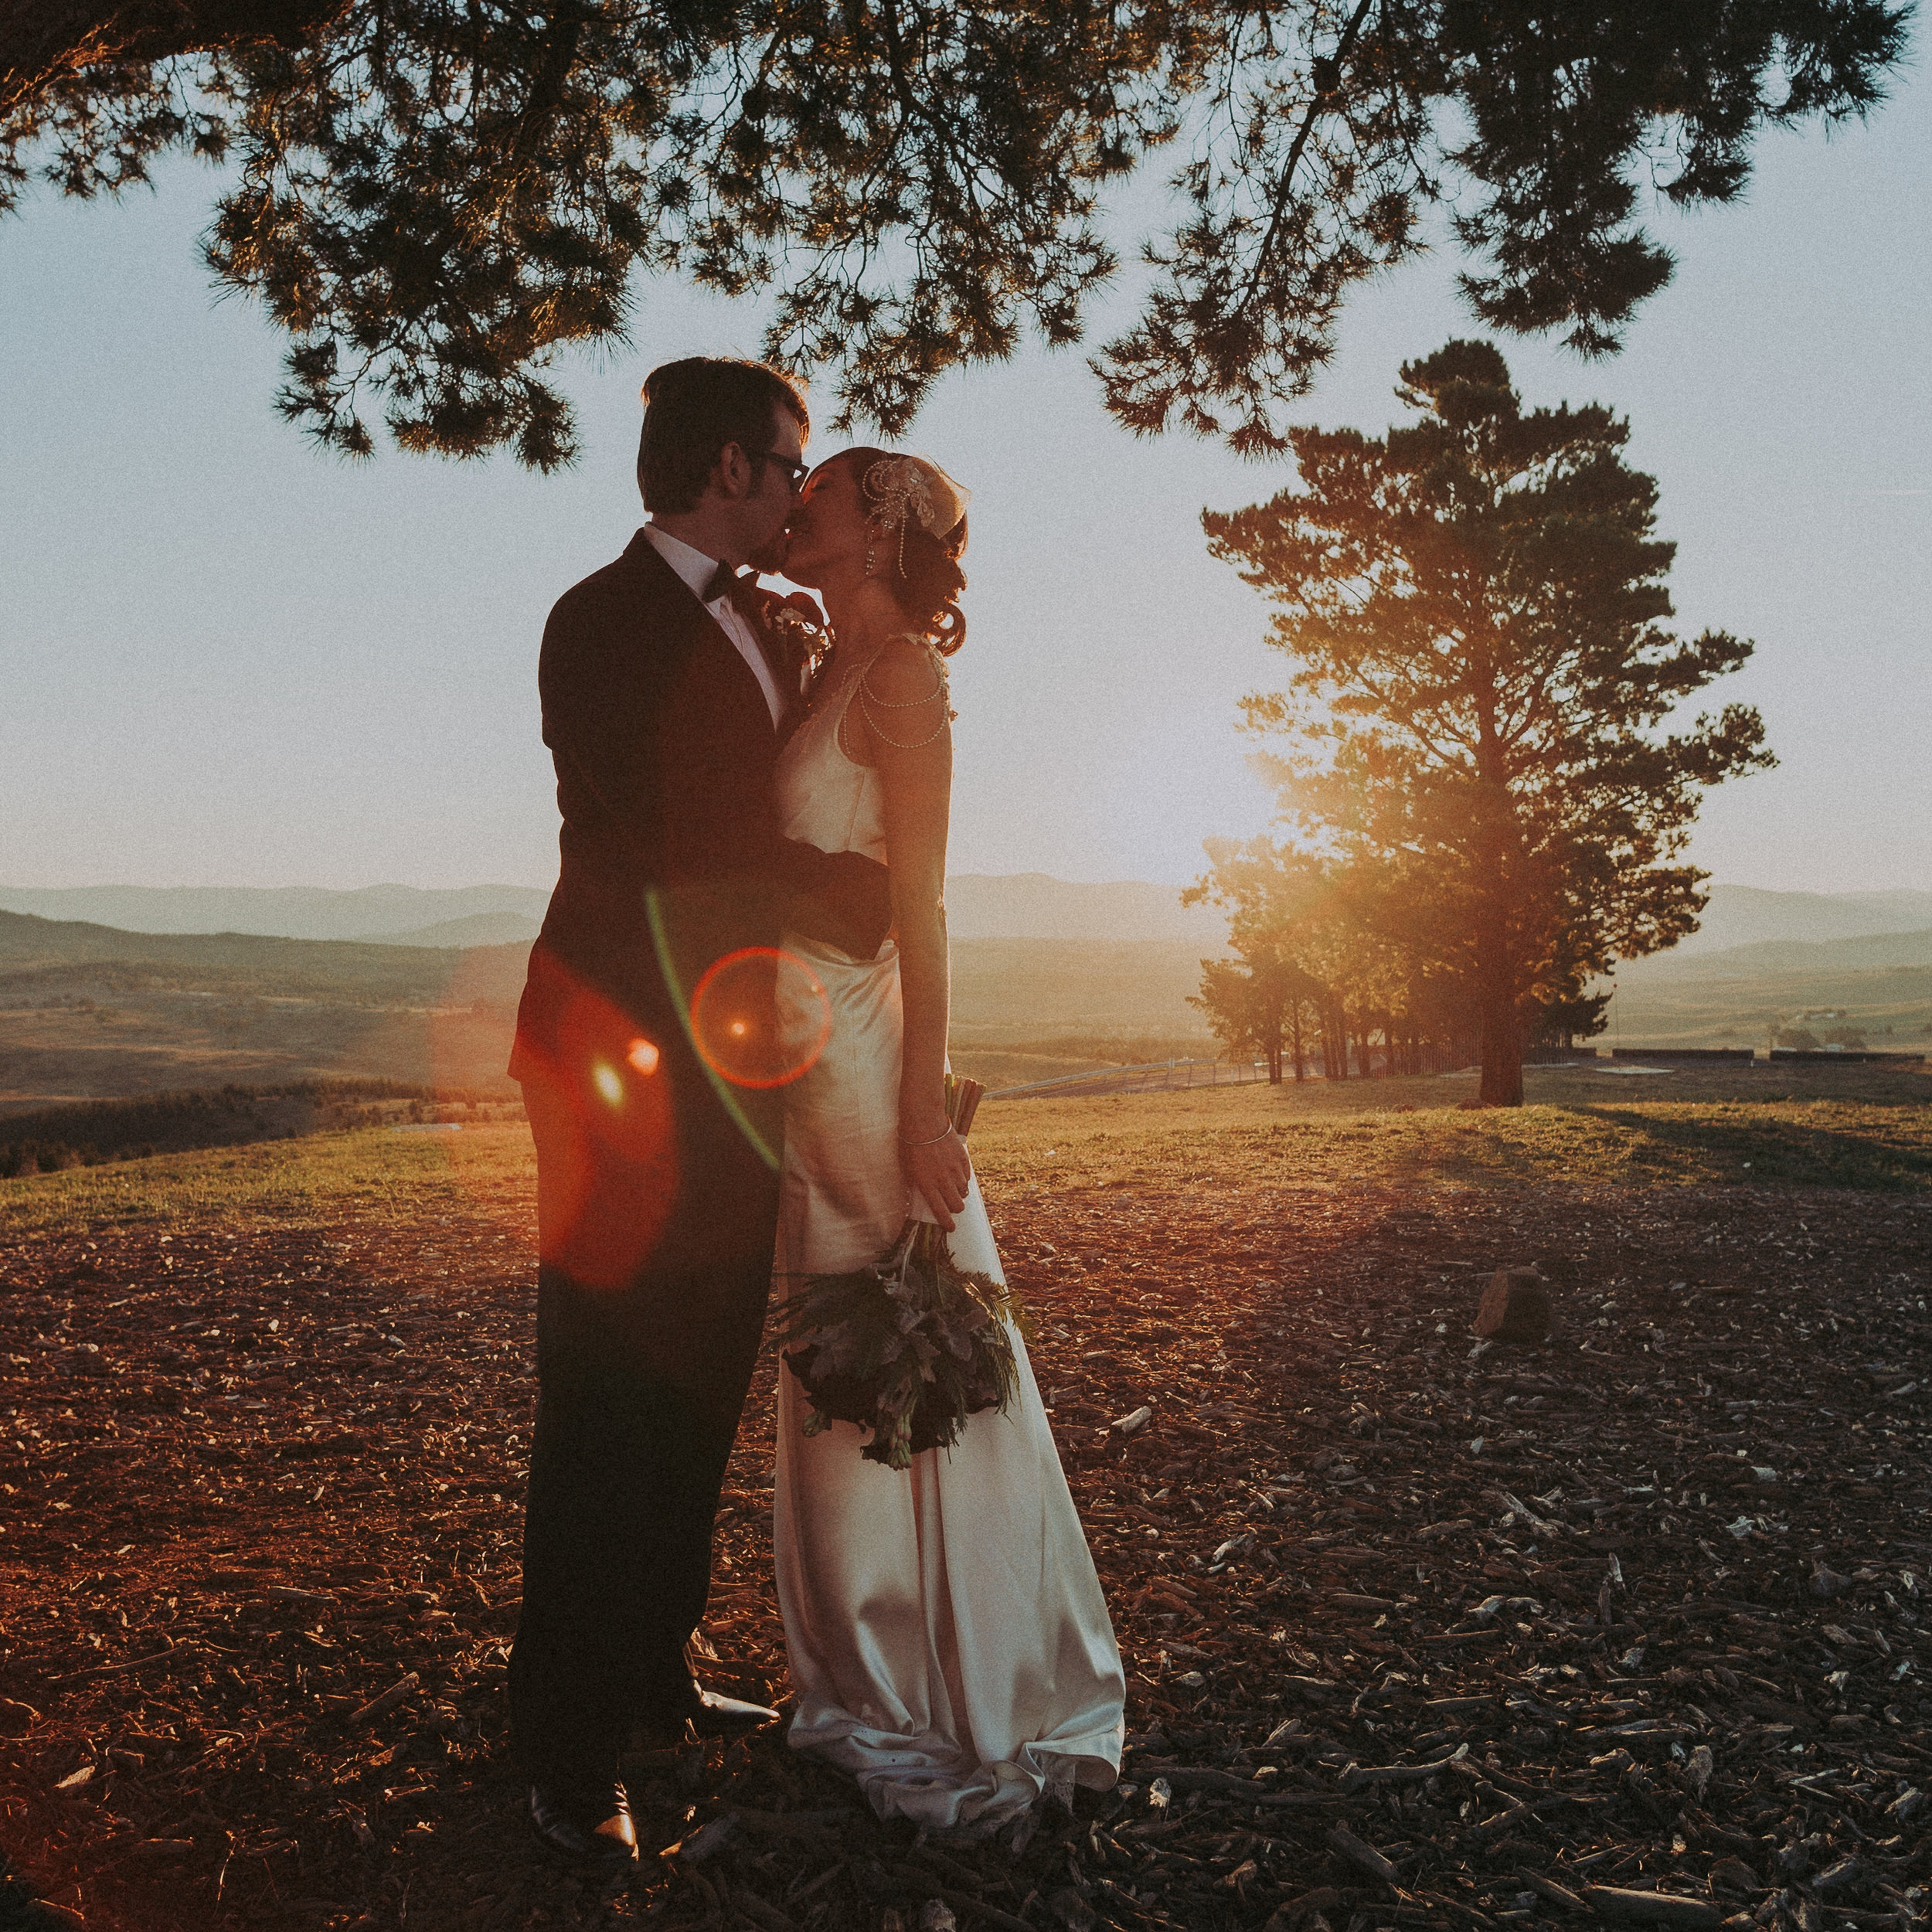 Elopement and intimate weddings - Covers ceremony / First look, and photo shoot at multiple locations.A total of 4 hours.